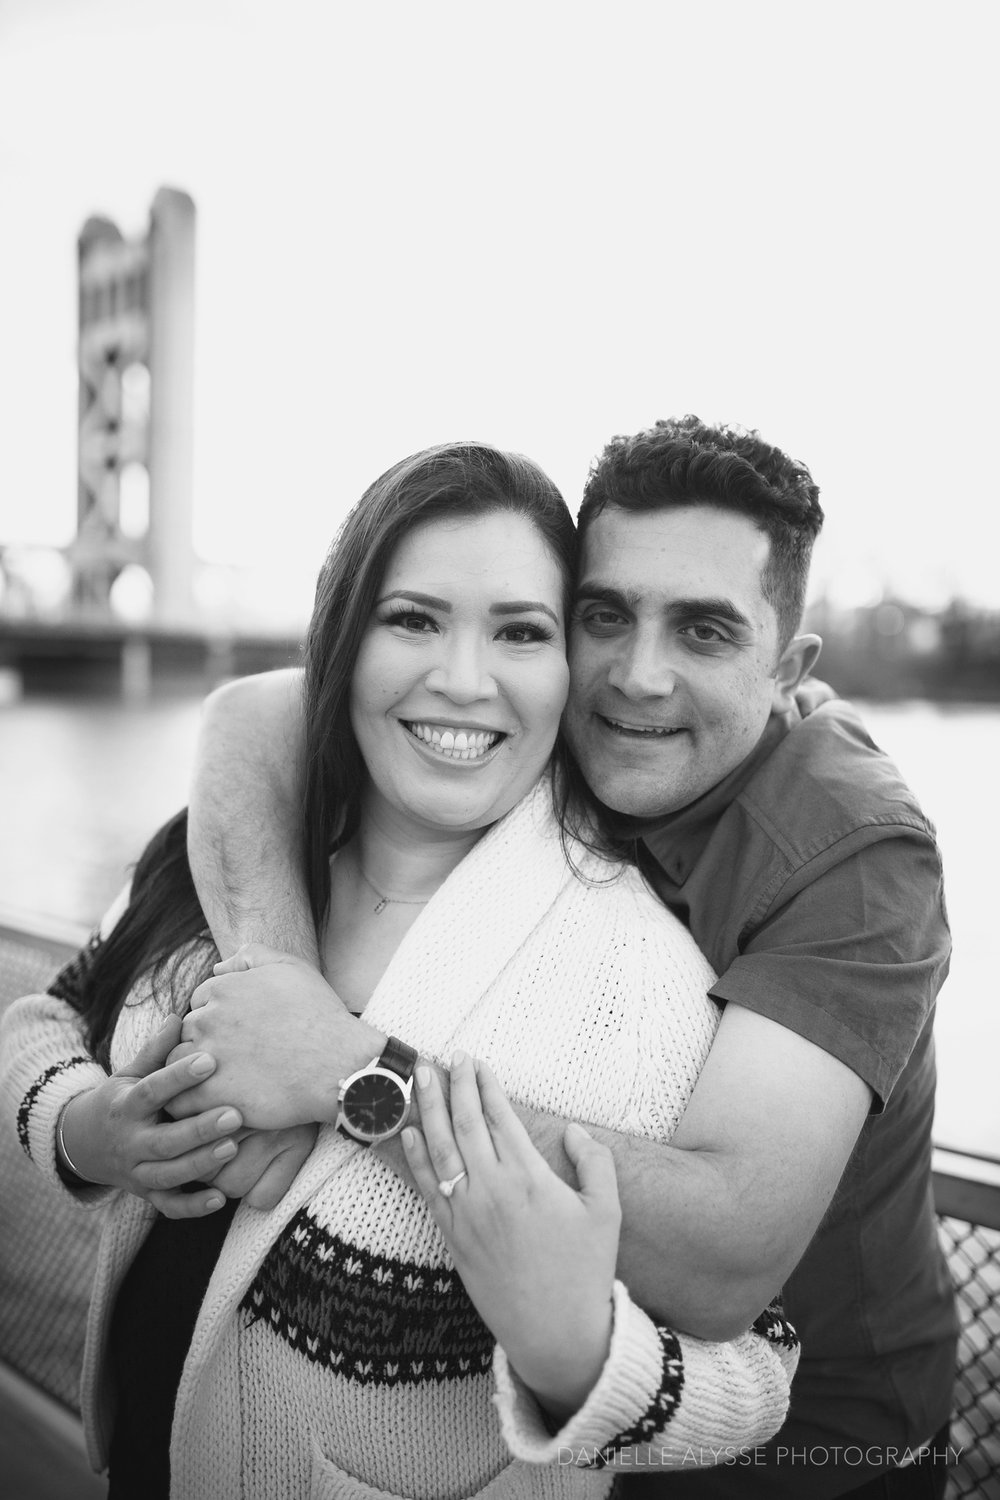 180324_engagement_lily_danielle_alysse_photography_downtown_sacramento_wedding_photographer_blog_65_WEB.jpg